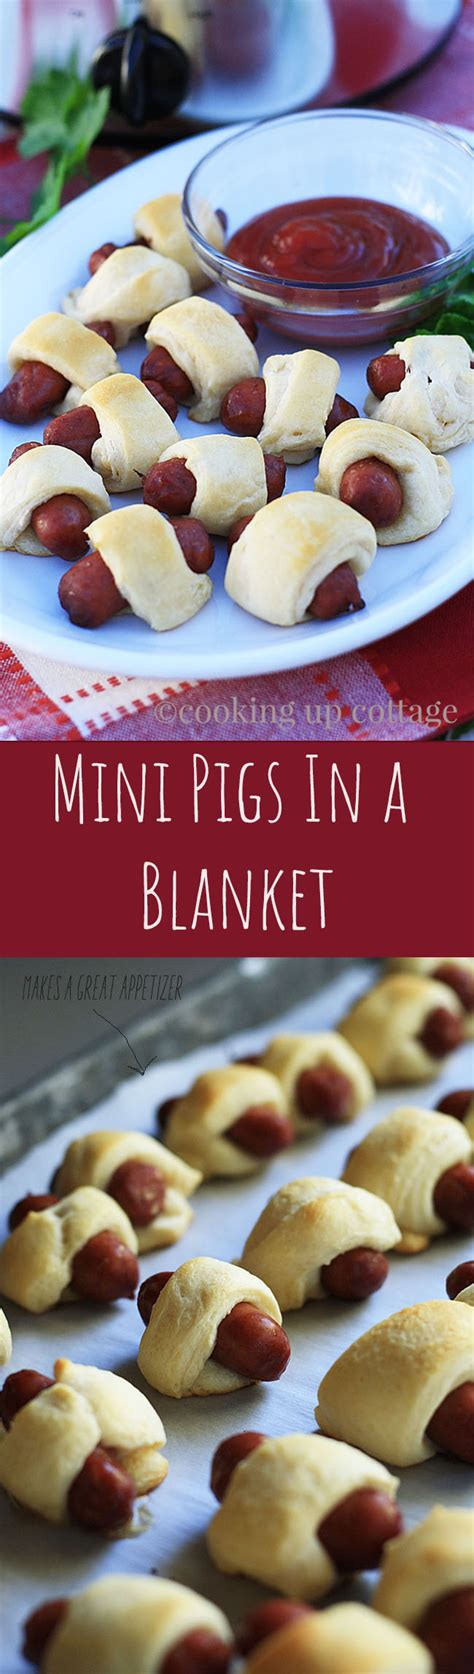 Two Pigs In A Blanket by Appetizers Cooking Up Cottage